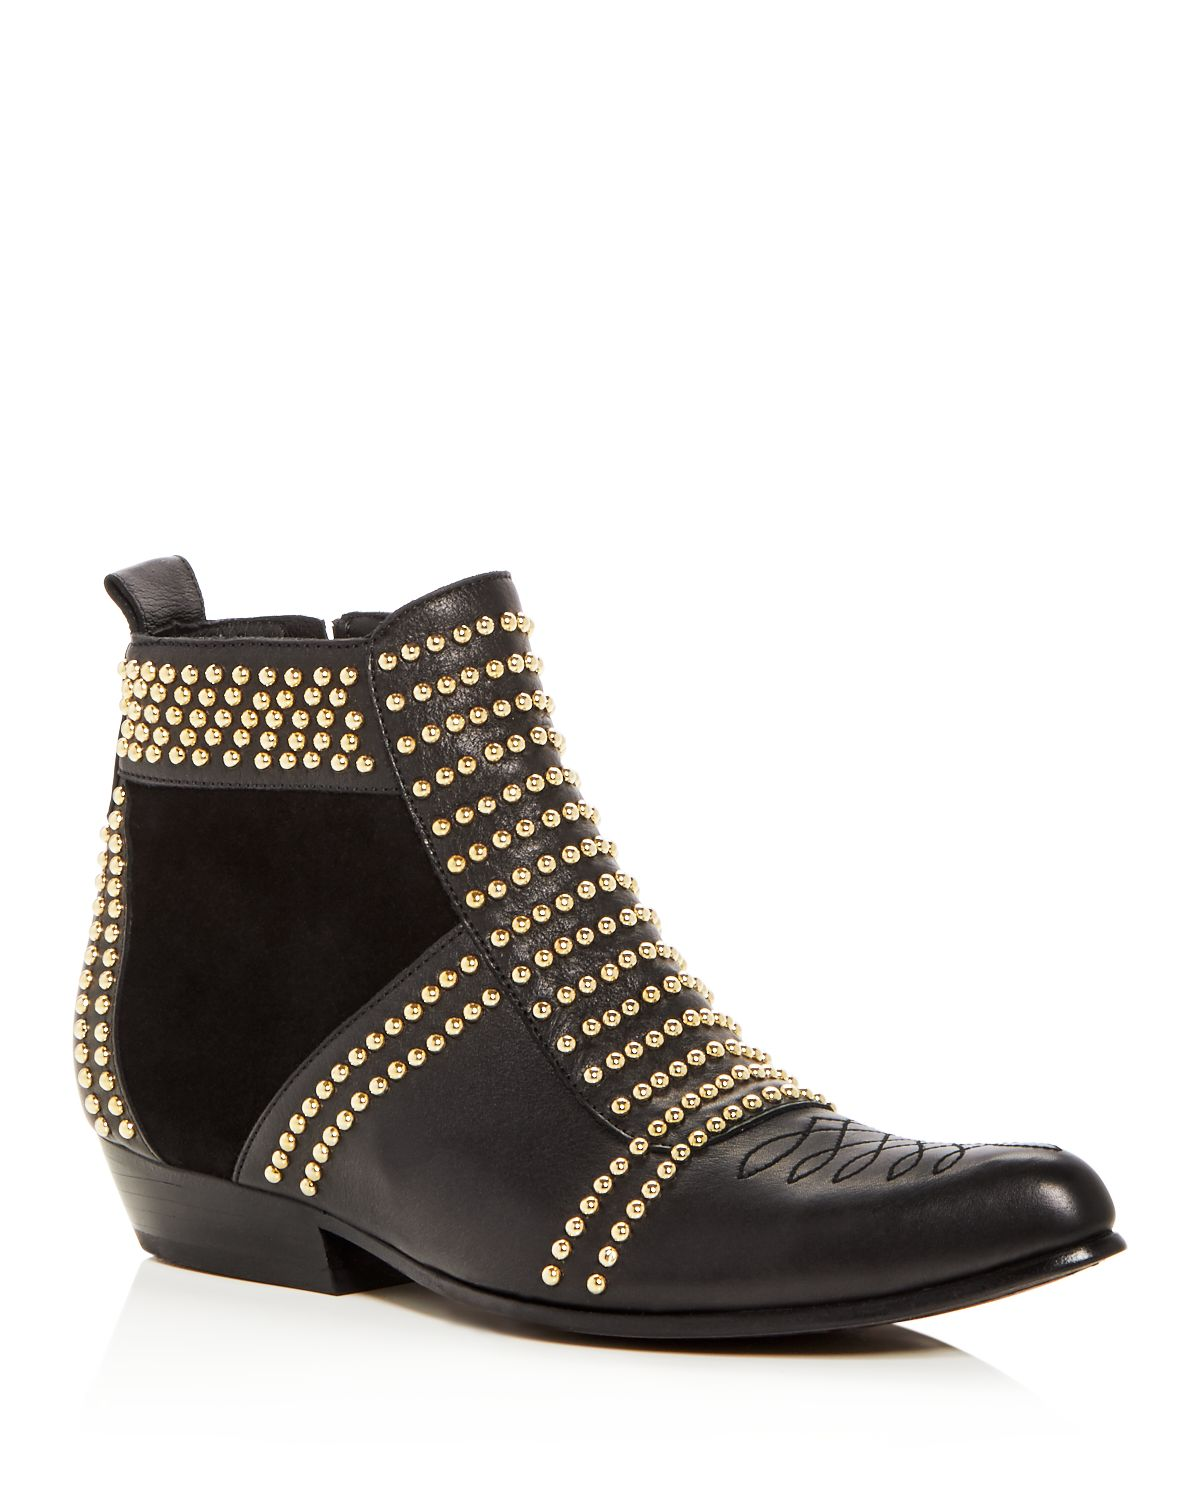 womens-charlie-studded-leather-&-suede-booties by anine-bing